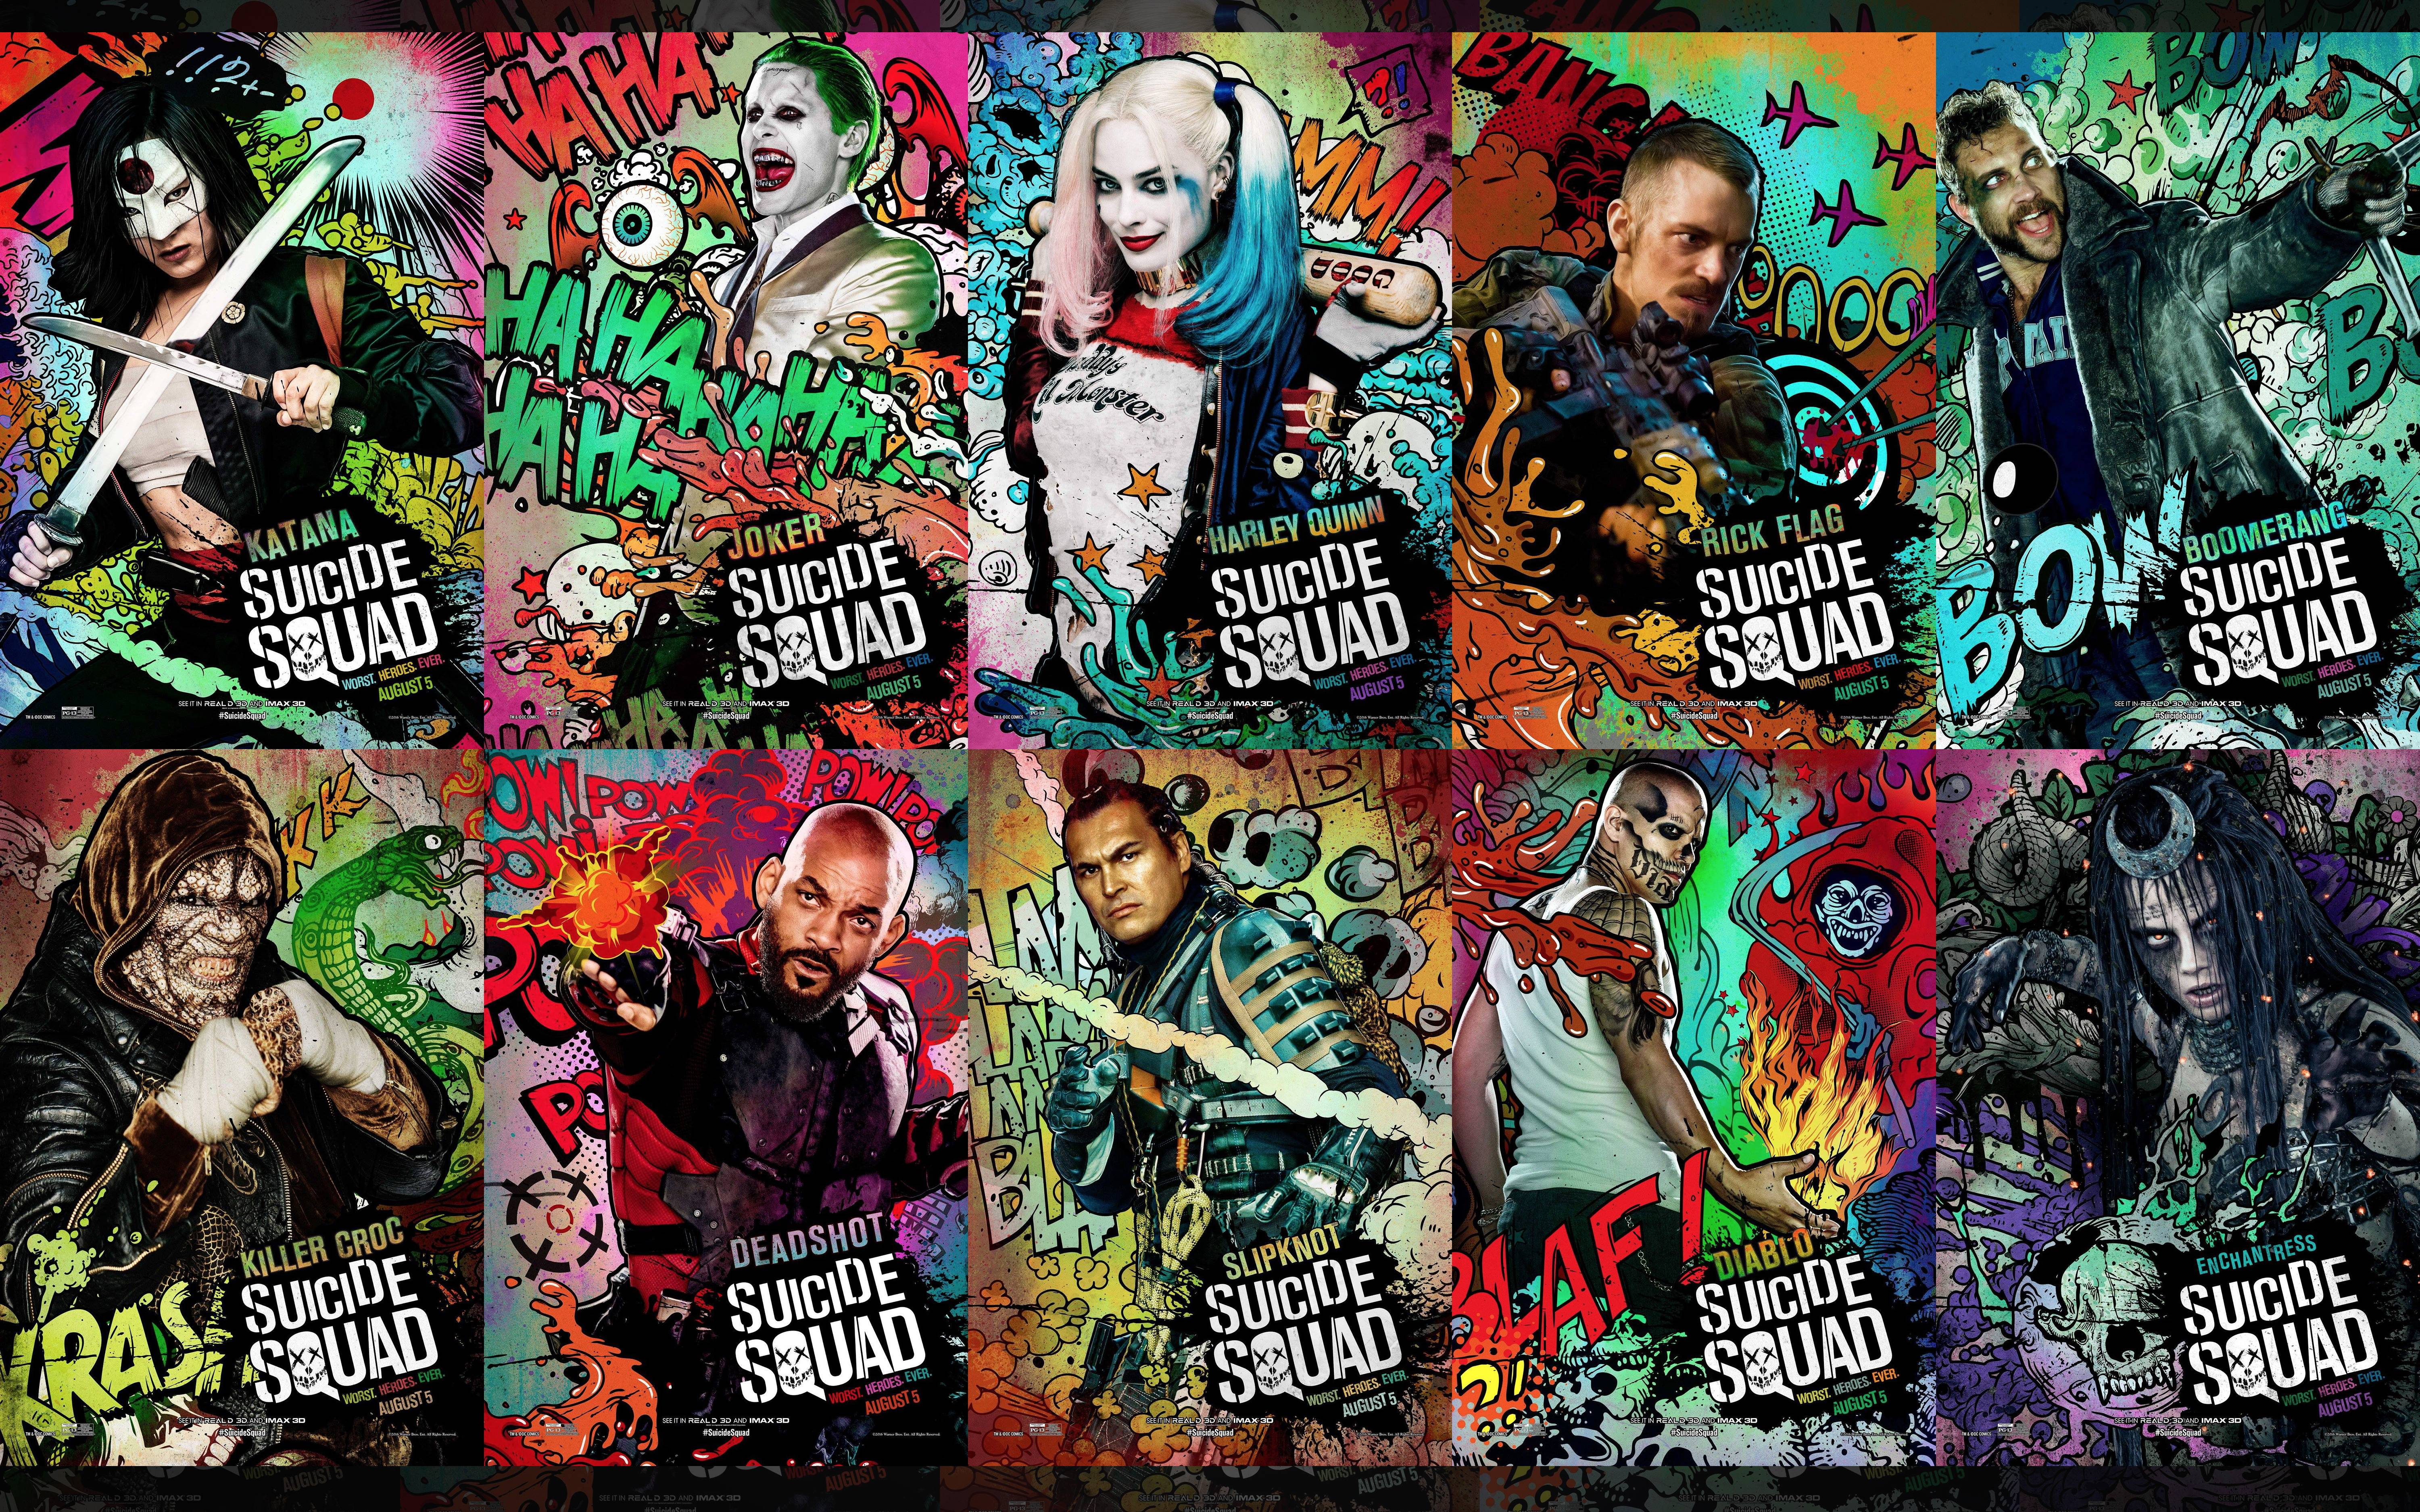 Cool Suicide Squad Wallpapers